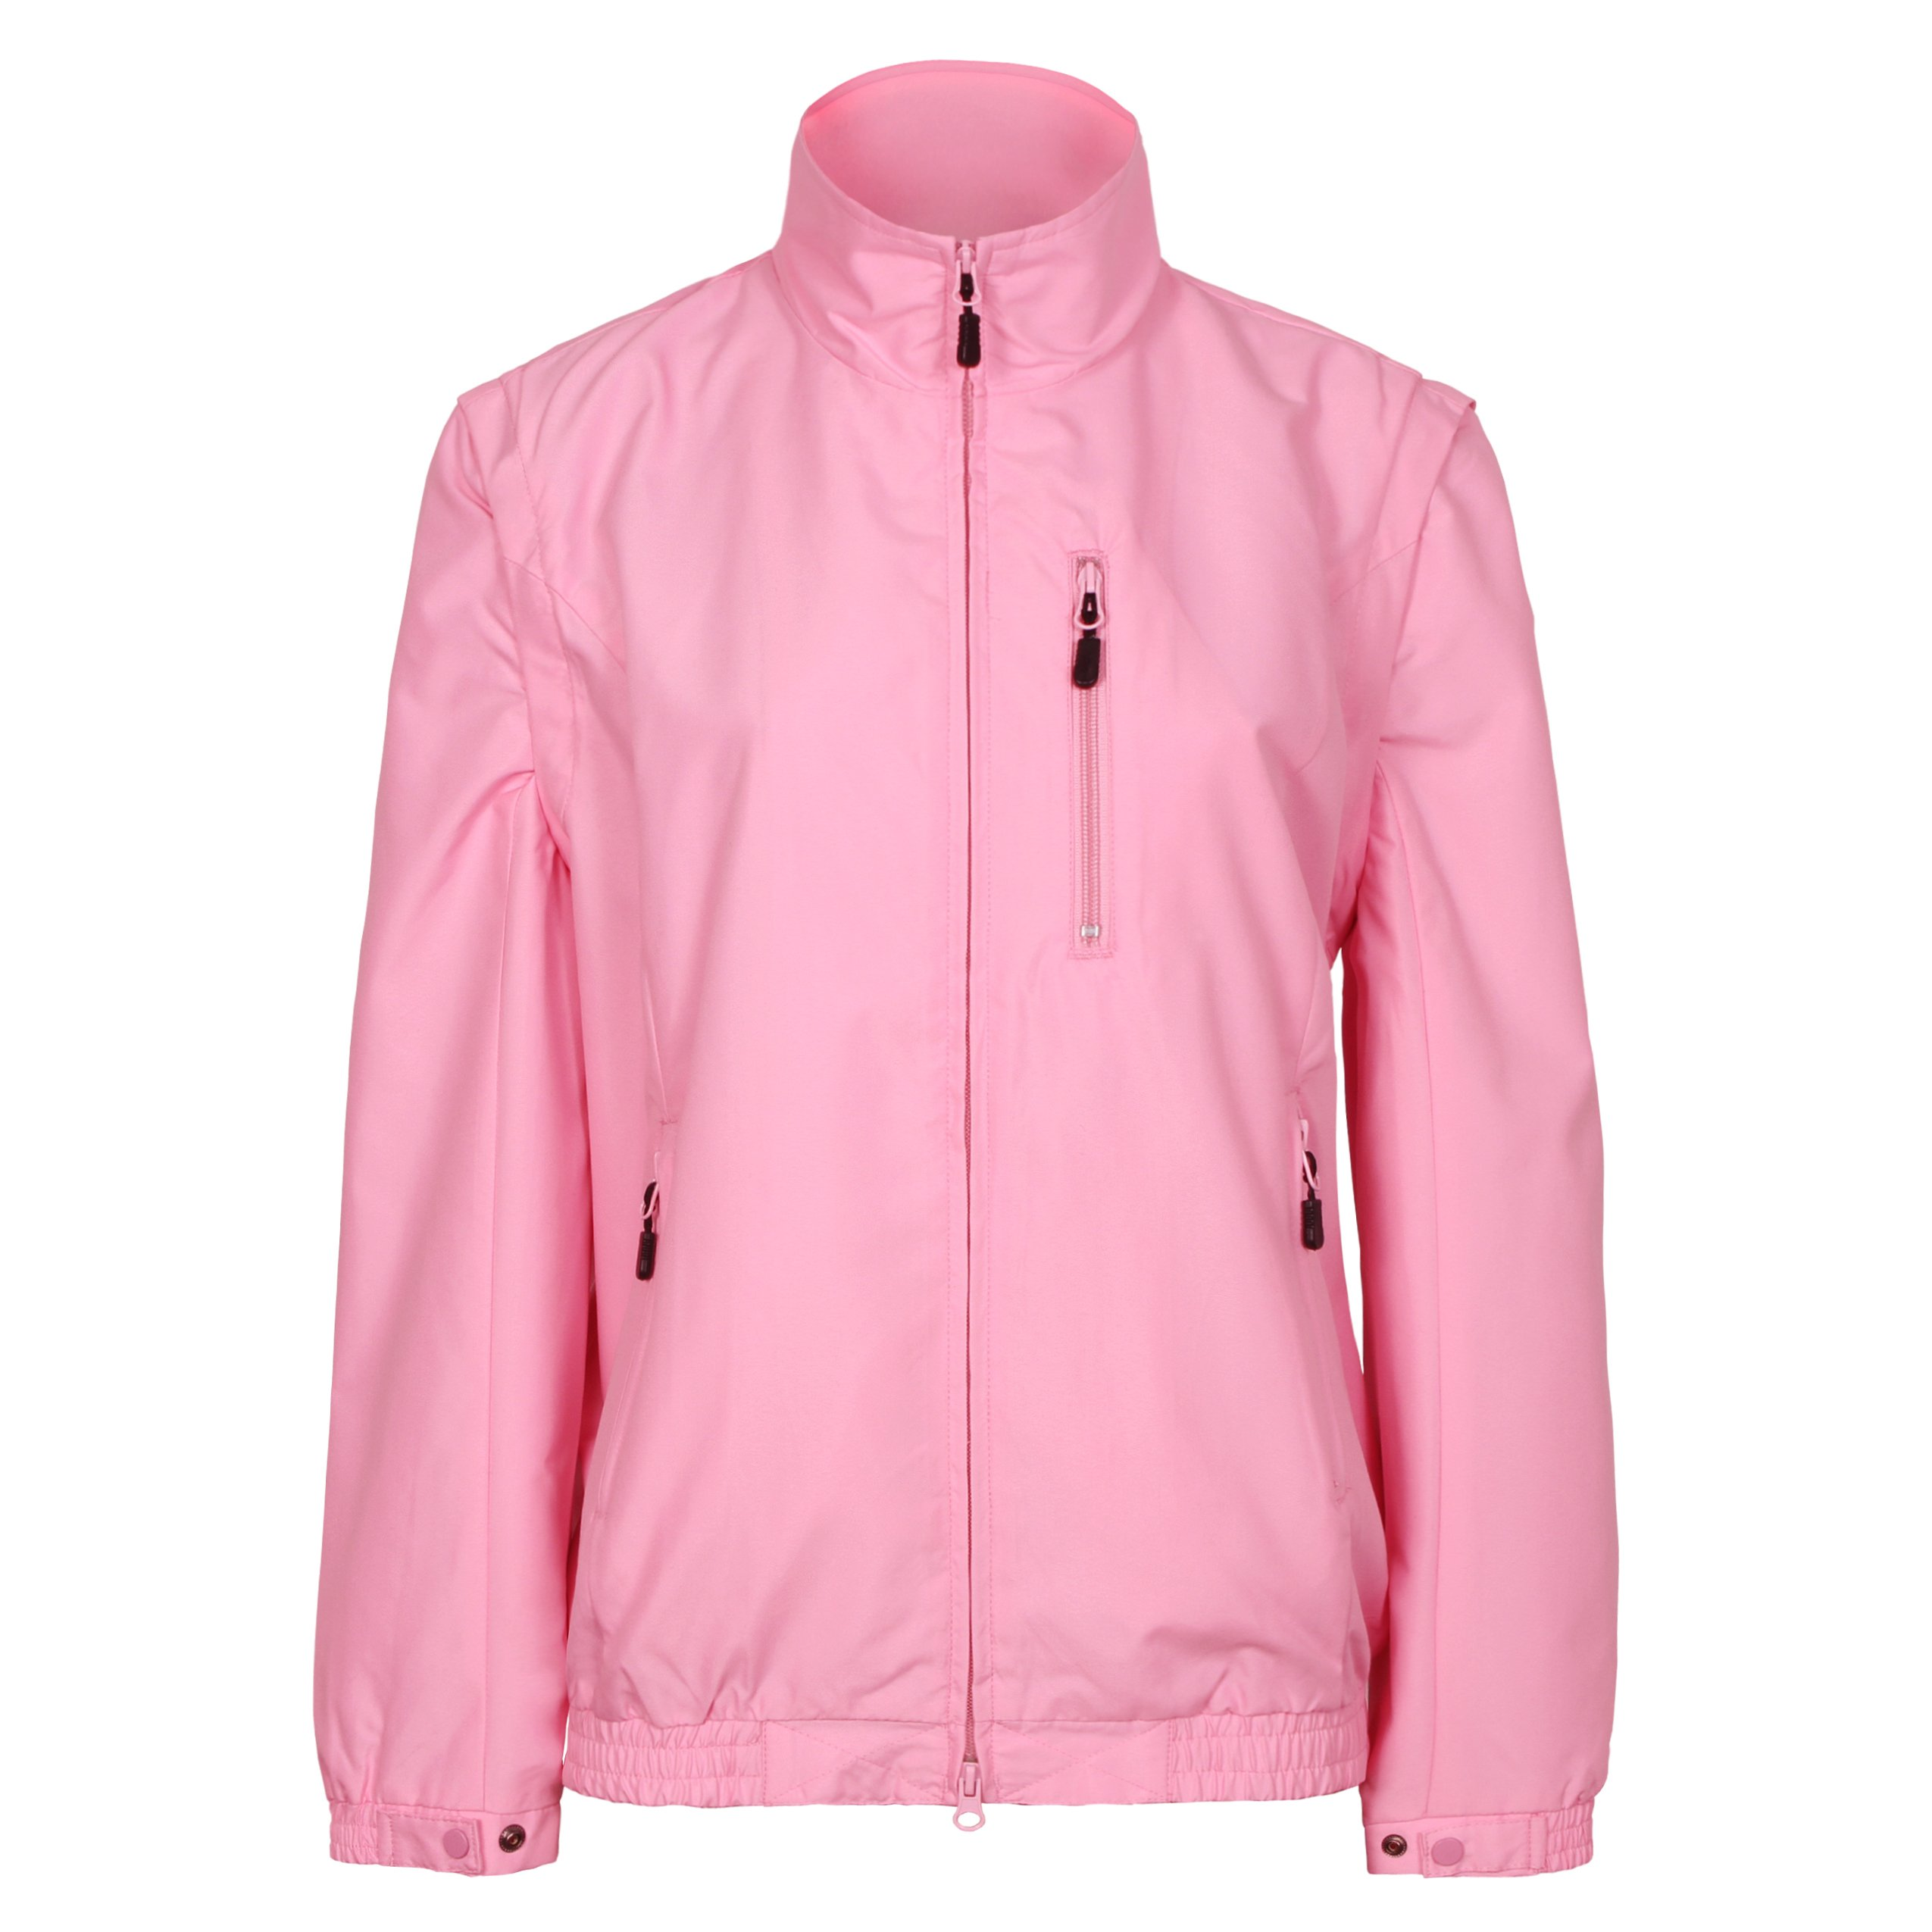 Tres Bien Golf Women's 2 in 1 Convertible Jacket / Vest (Large, Pink) by Tres Bien Golf (Image #1)